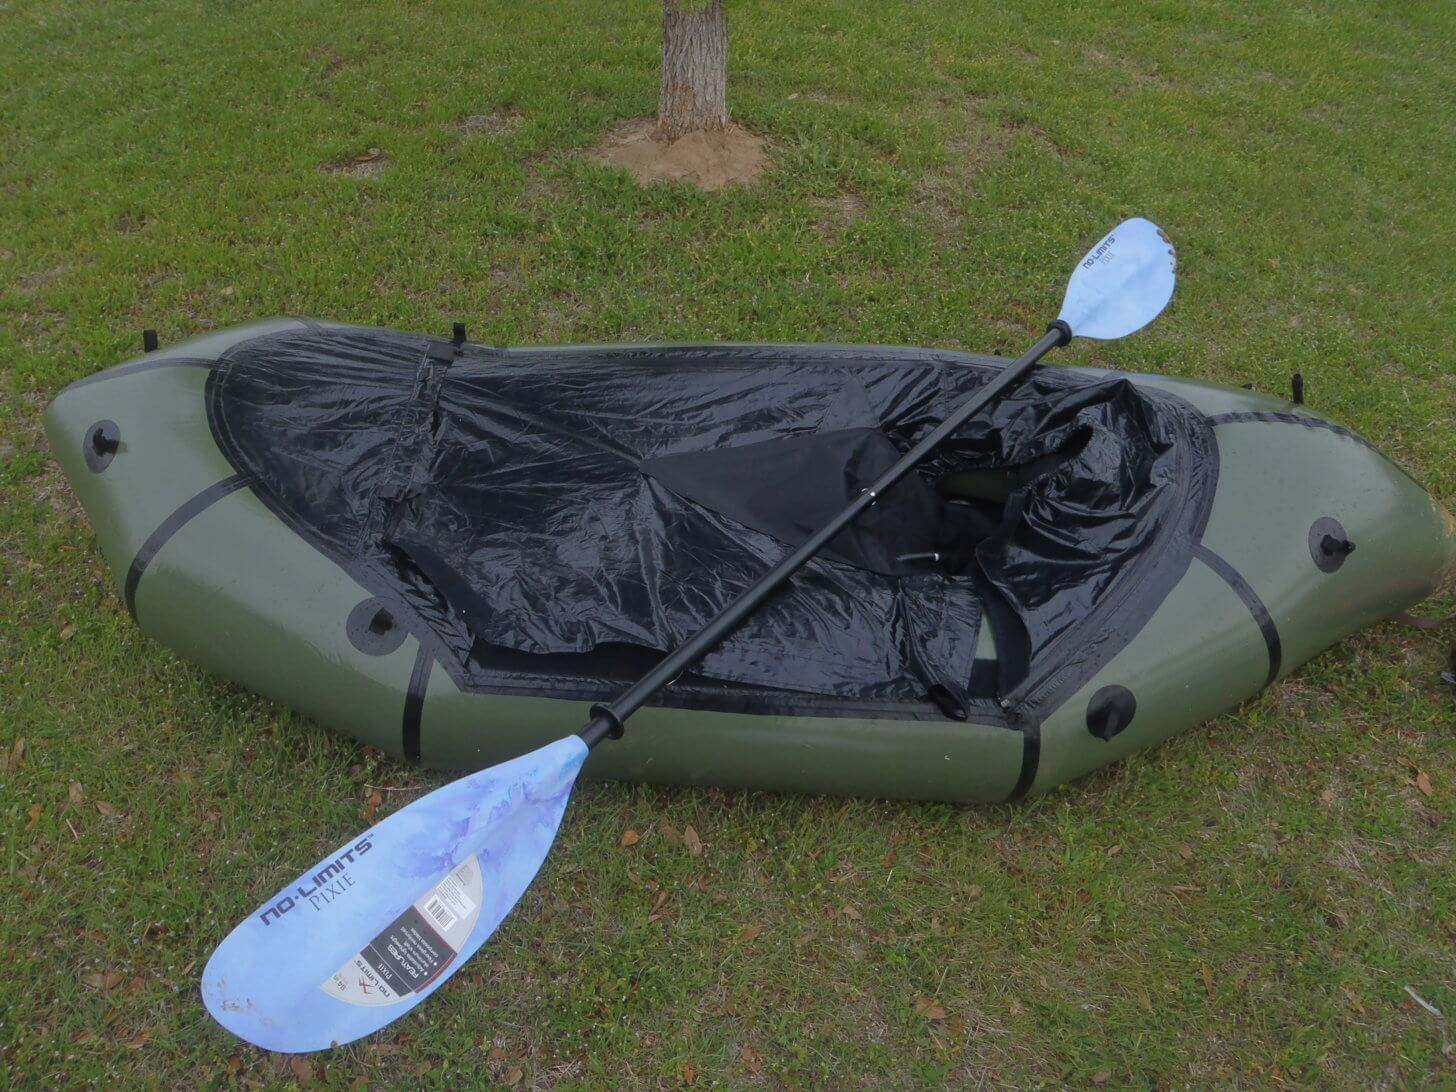 Packraft Reviews: An Alpacka raft with a Cruiser spray deck.